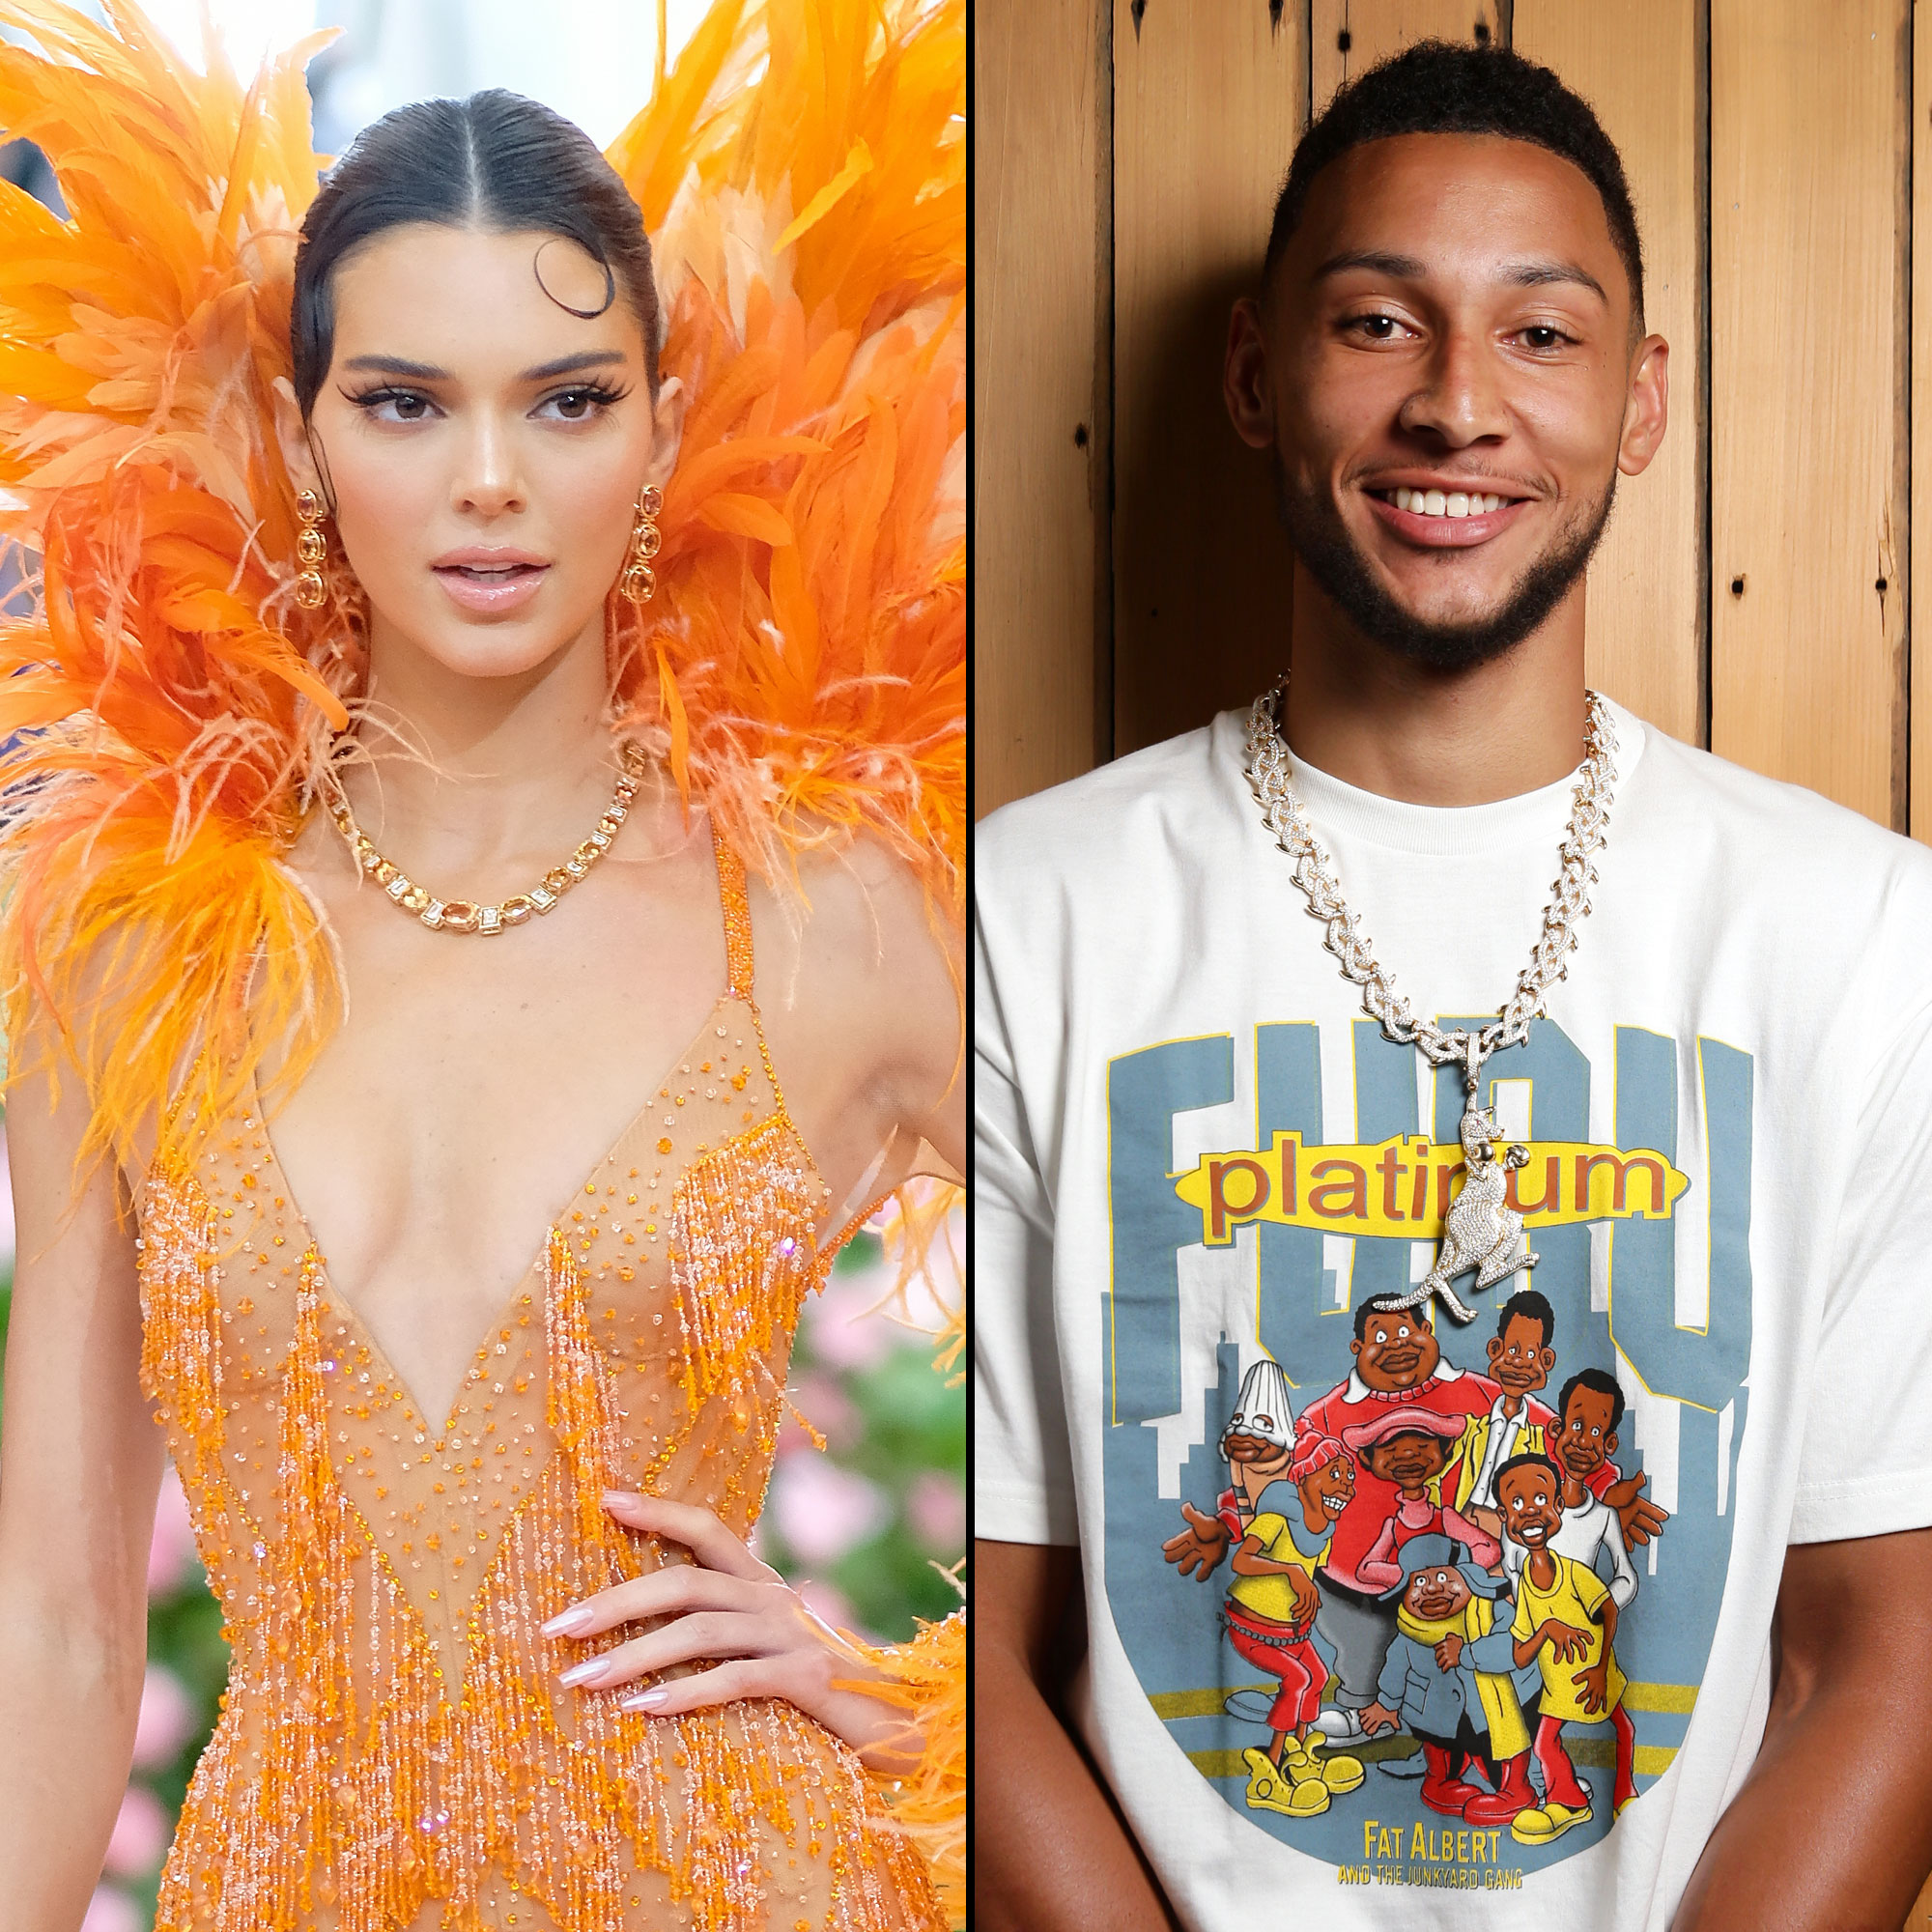 Kendall Jenner Shares Why She Keeps Relationship With Ben Simmons Quiet, Marriage JVB - Kendall Jenner and Ben Simmons